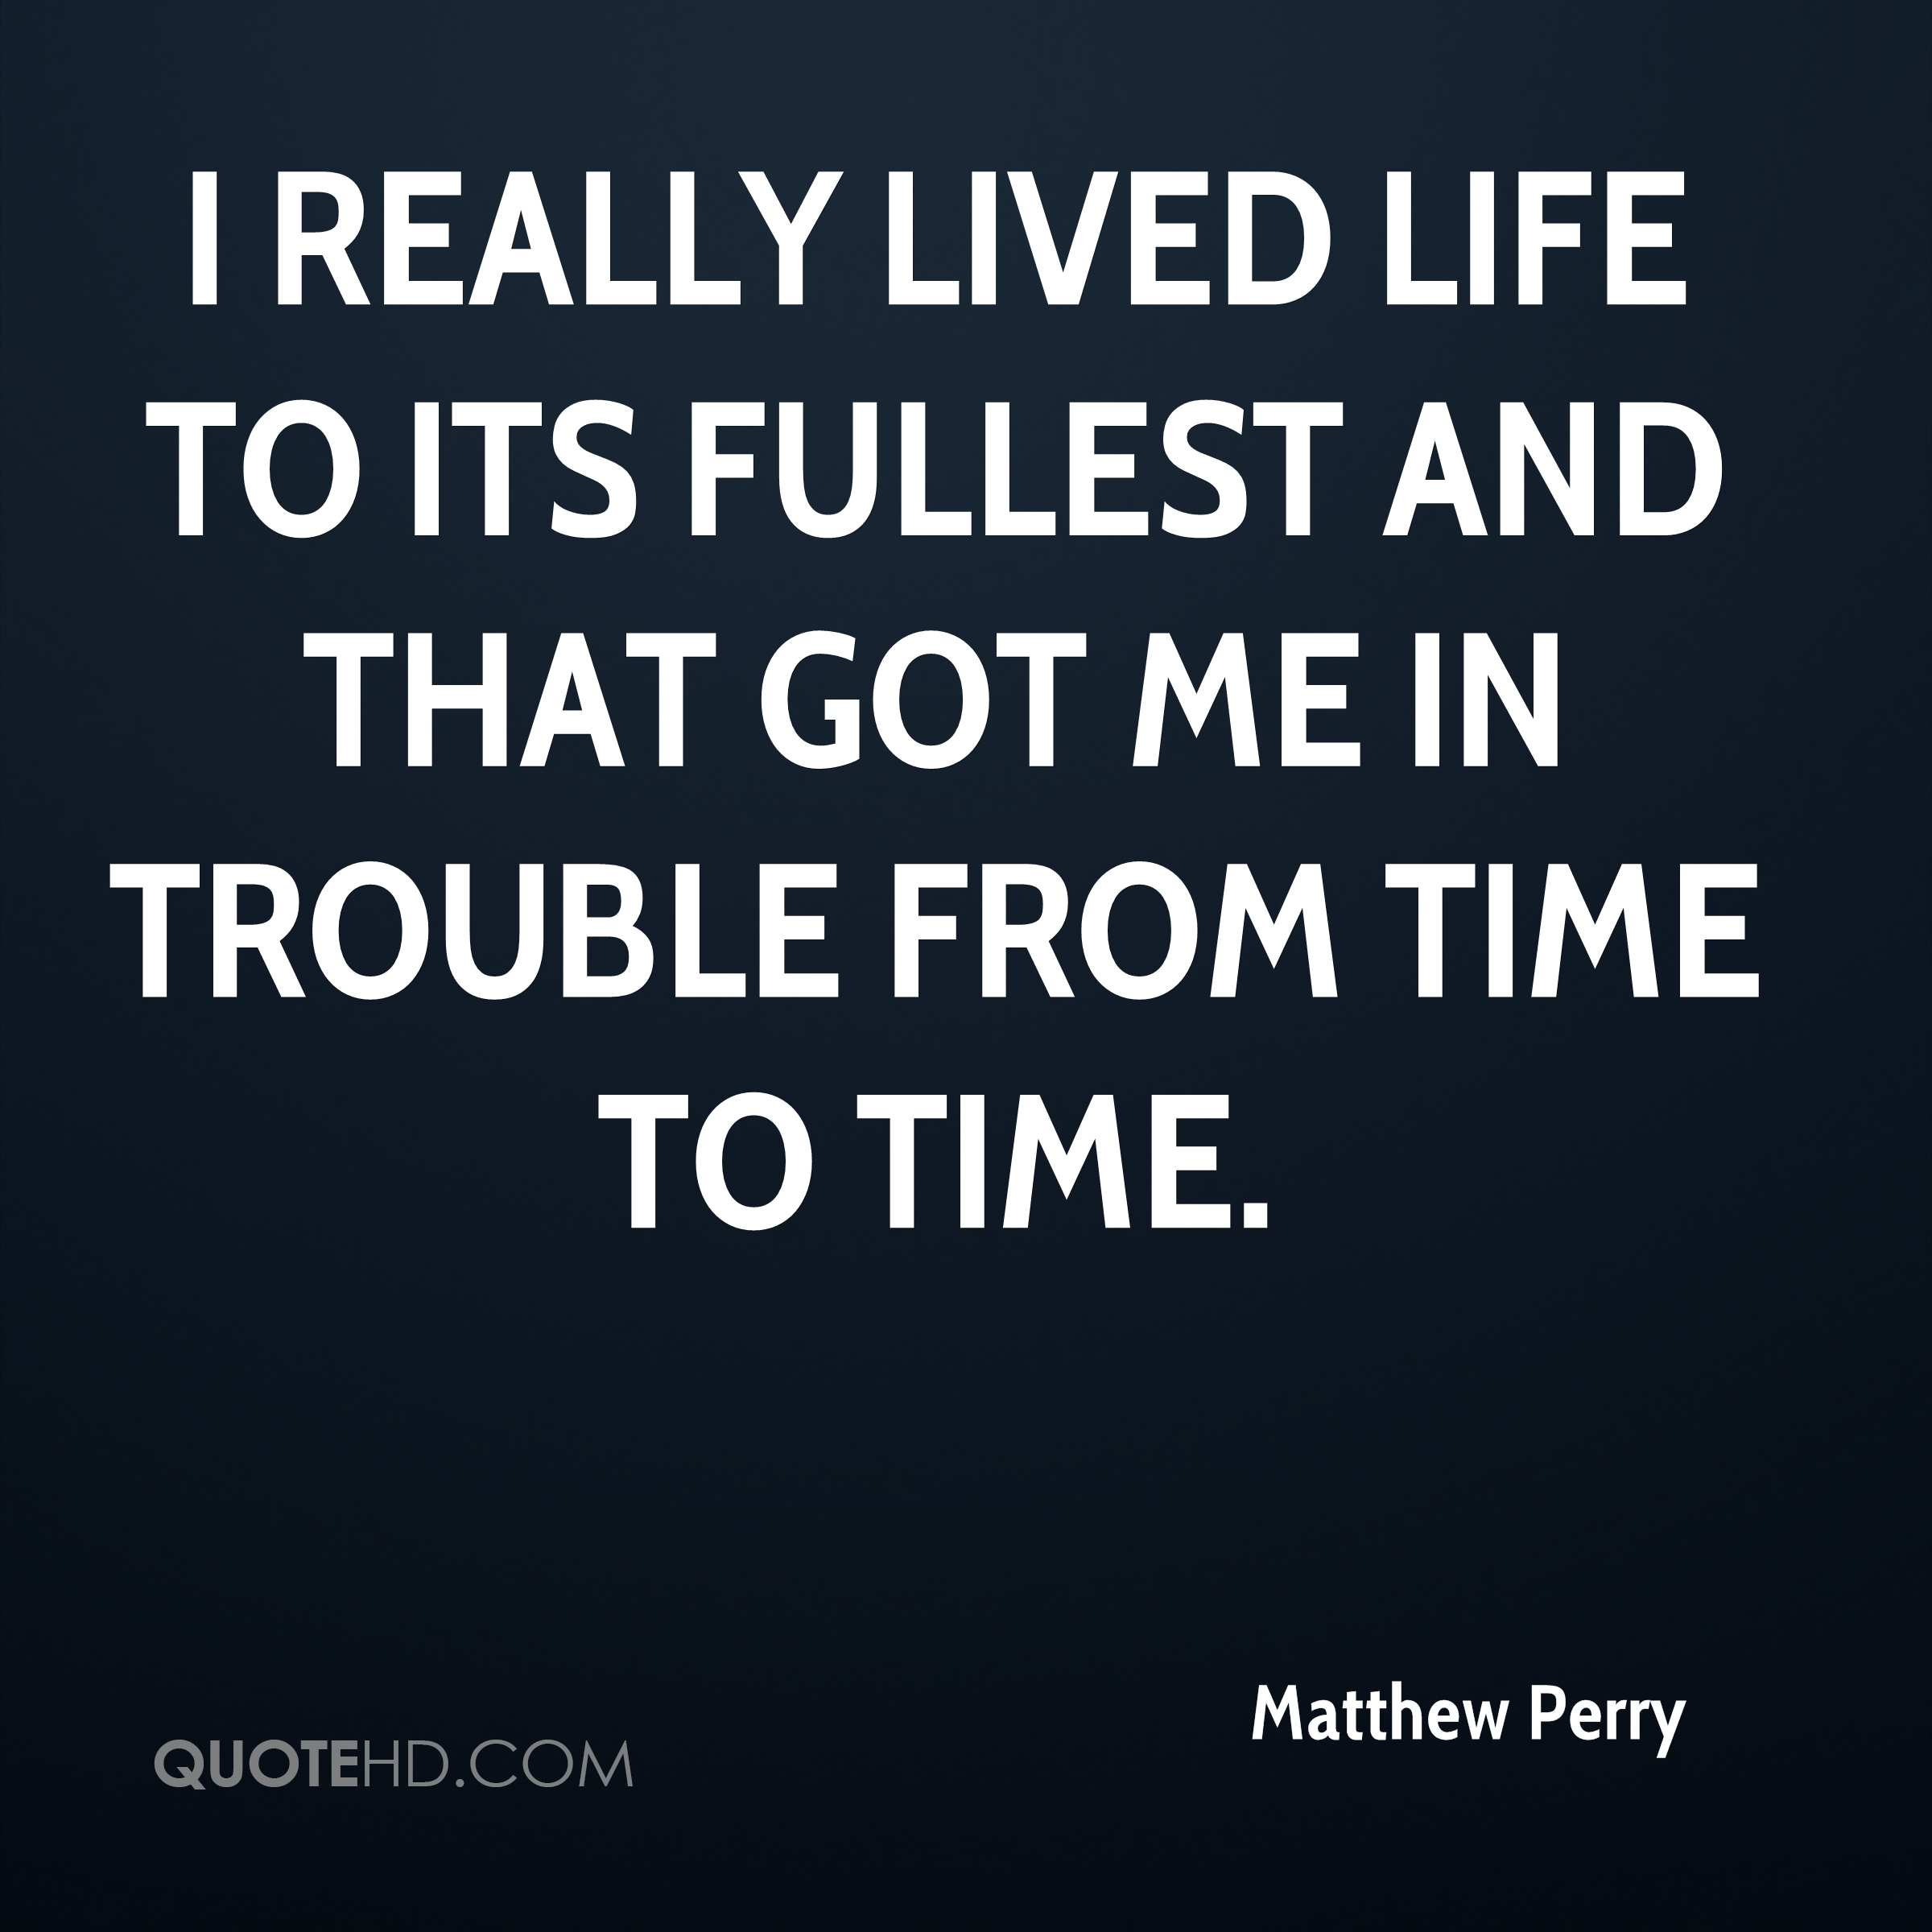 I really lived life to its fullest and that got me in trouble from time to time.